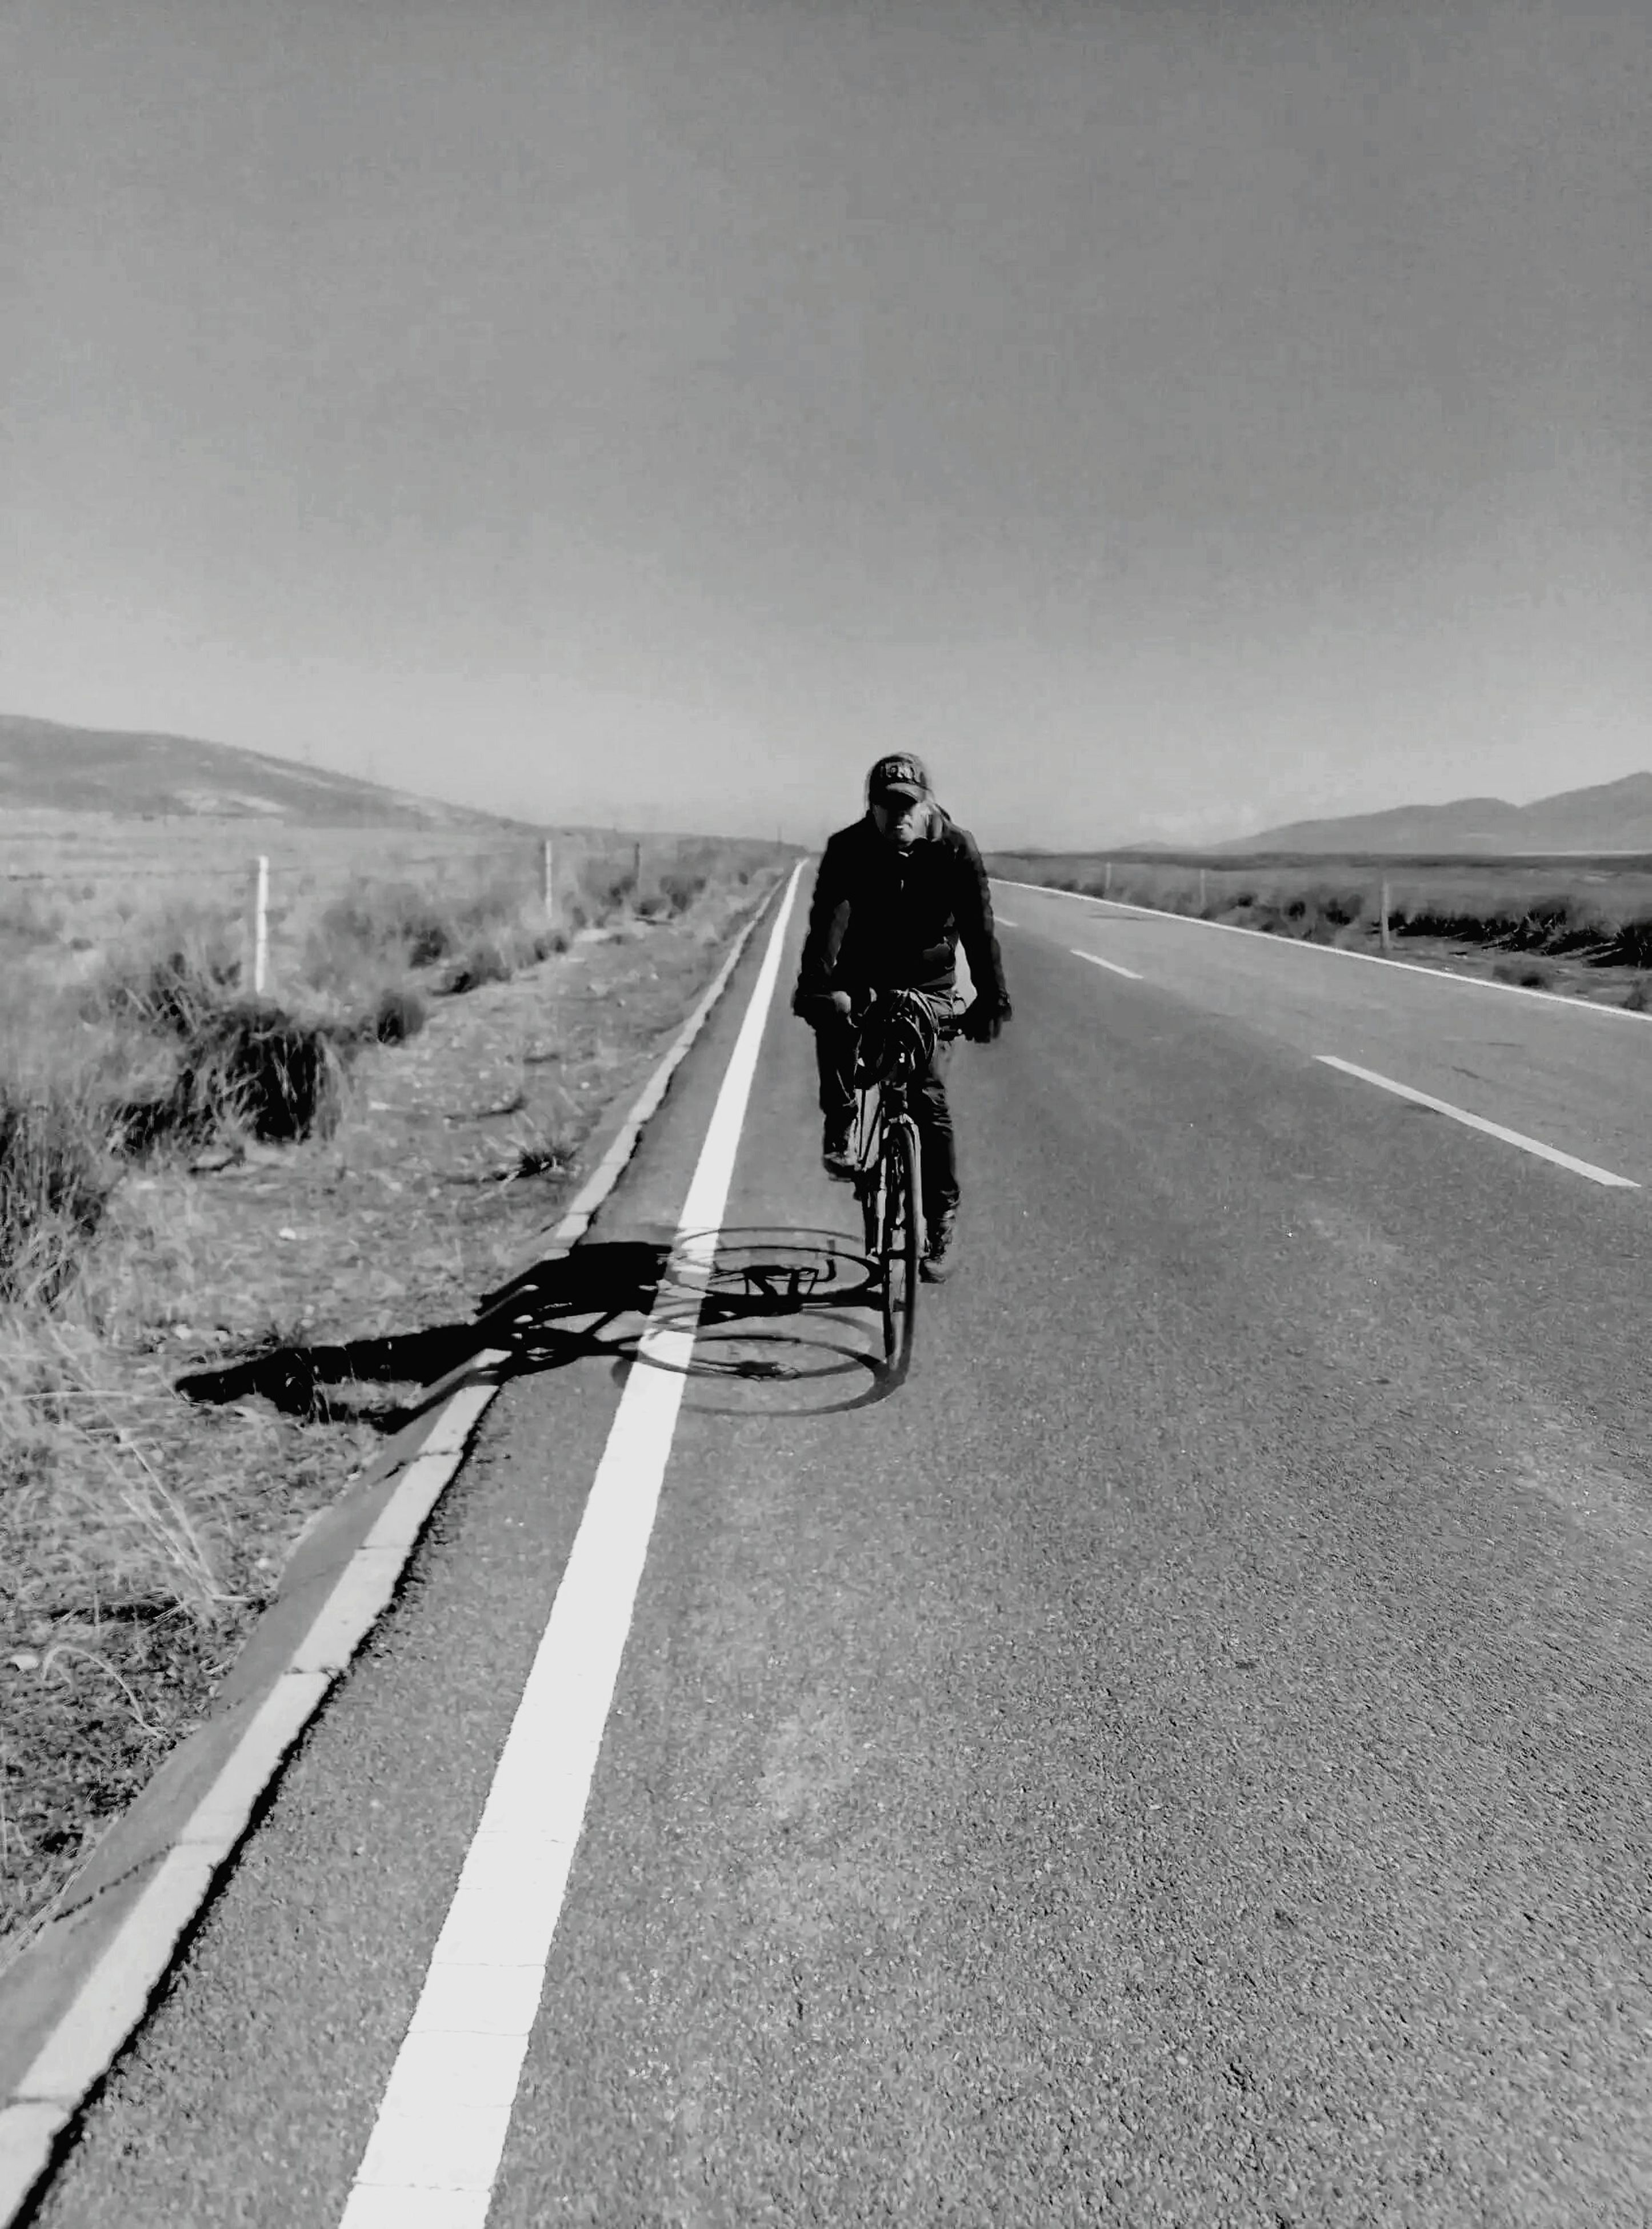 transportation, one person, riding, road, bicycle, landscape, full length, headwear, desert, helmet, outdoors, land vehicle, men, day, real people, sky, arid climate, adventure, sport, clear sky, mountain, nature, cycling helmet, one man only, biker, adult, young adult, people, adults only